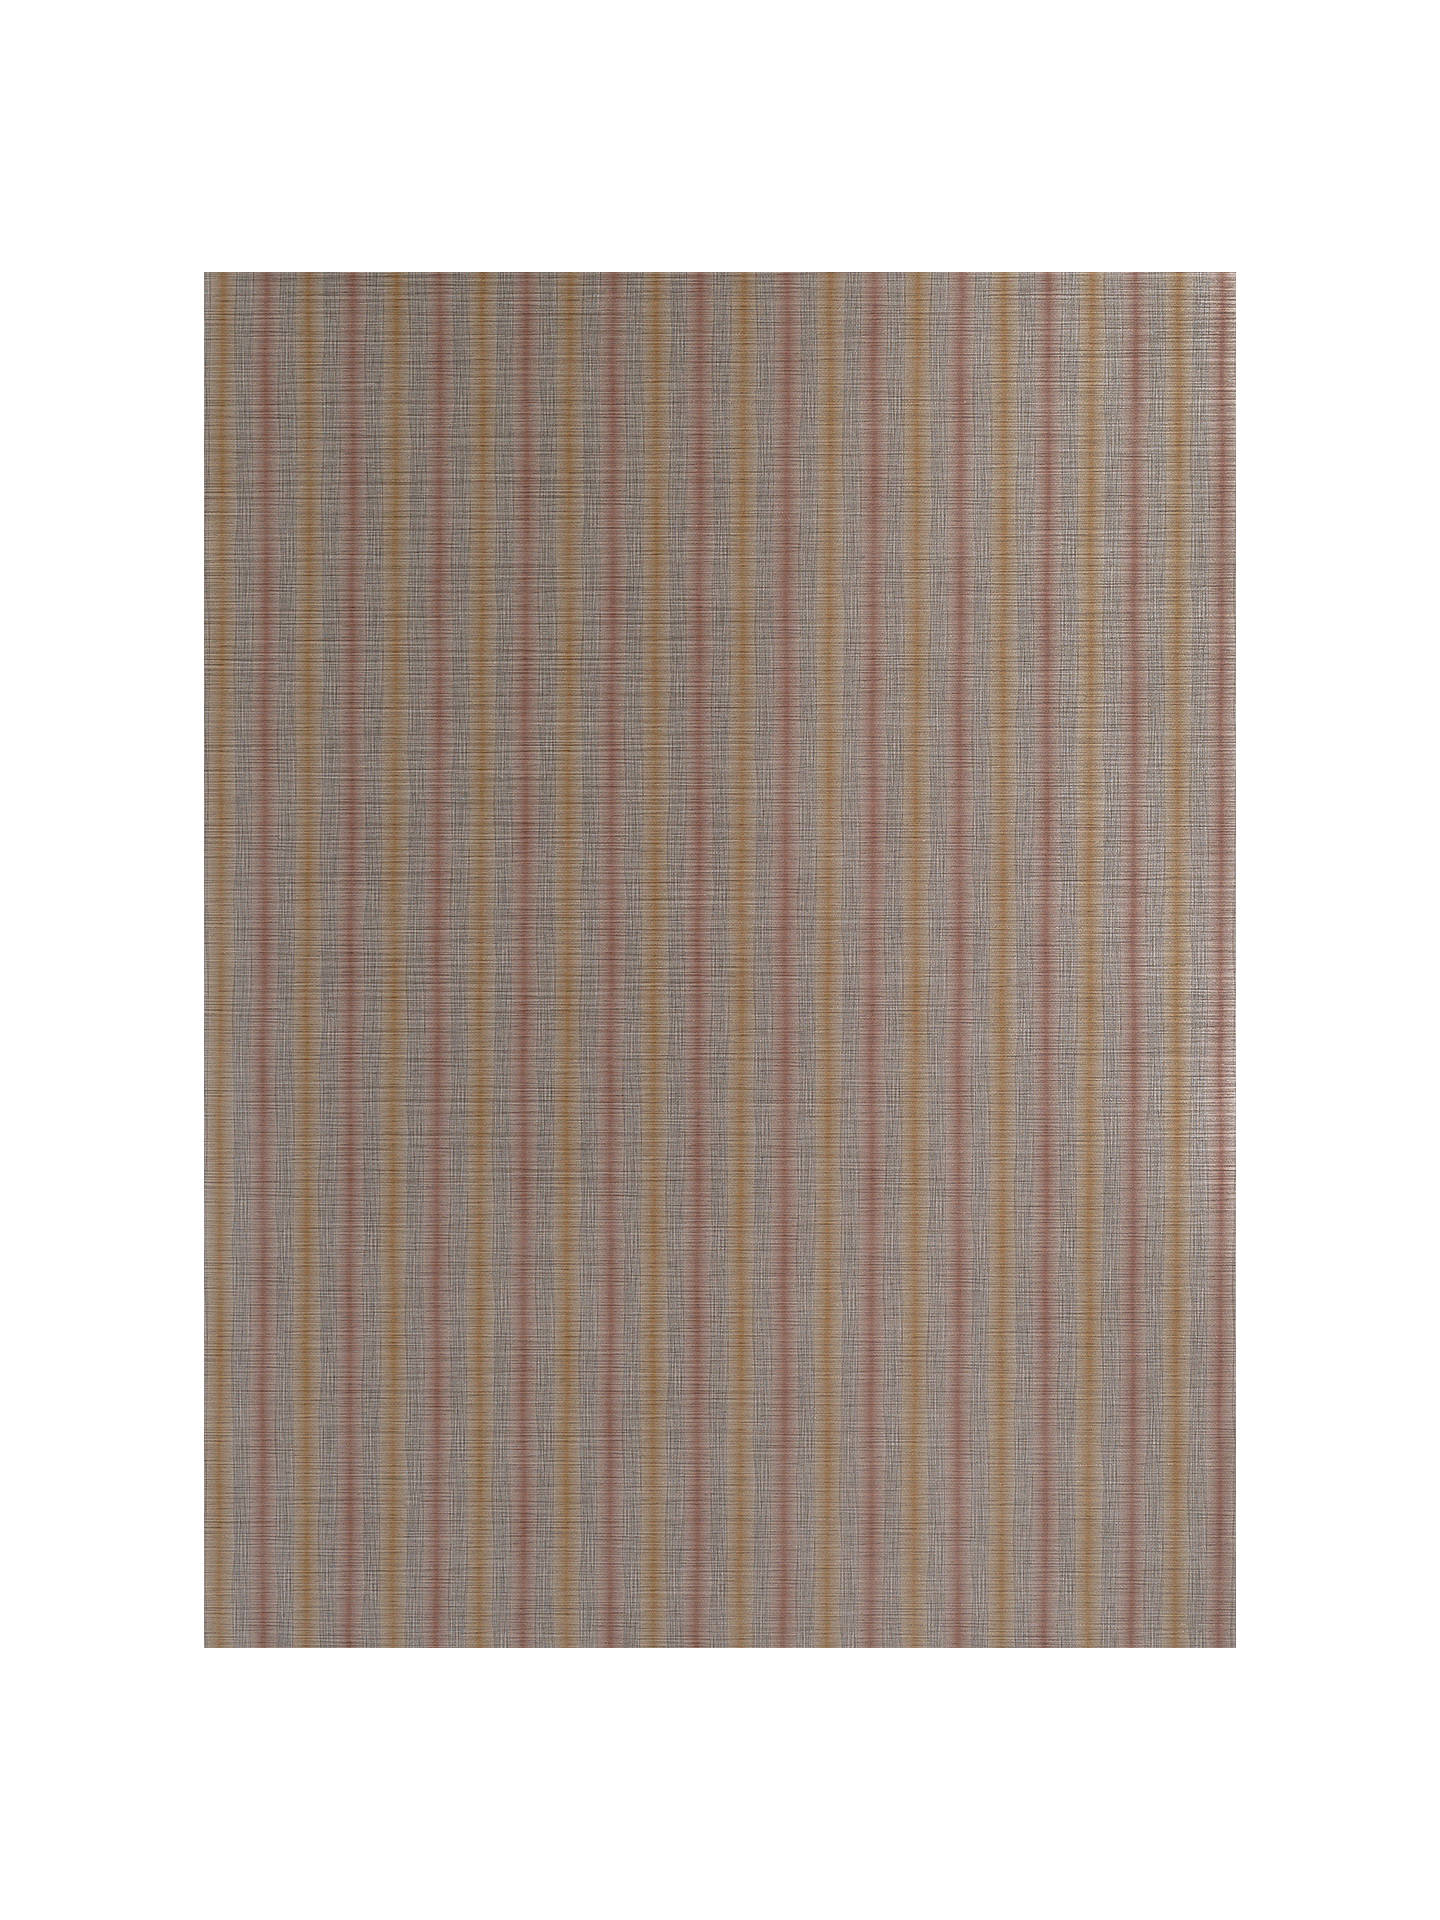 Buy Osborne & Little Raffia Wallpaper, W7191-08 Online at johnlewis.com